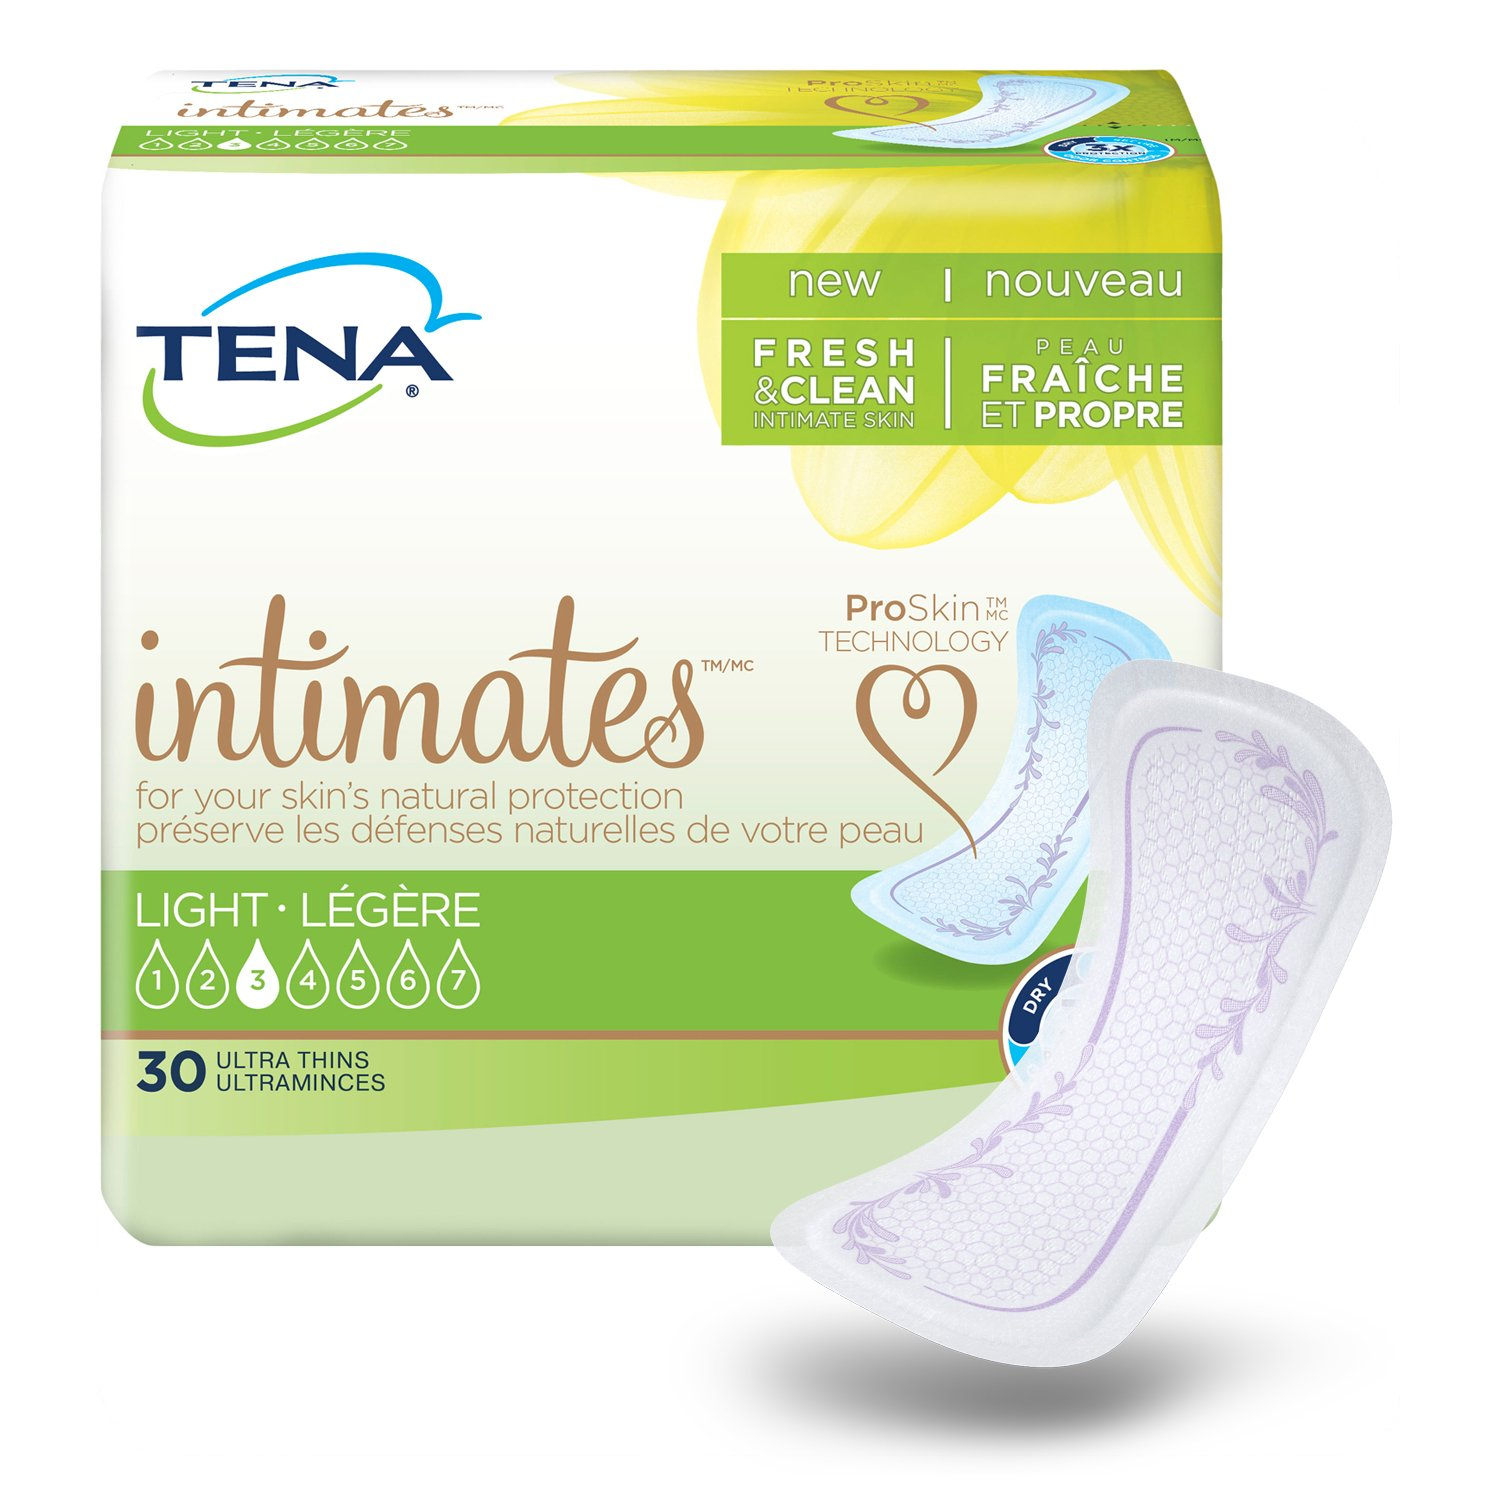 TENA Intimates Ultra Thin Light Pads Regular 30 Count (Pack of 3) product image